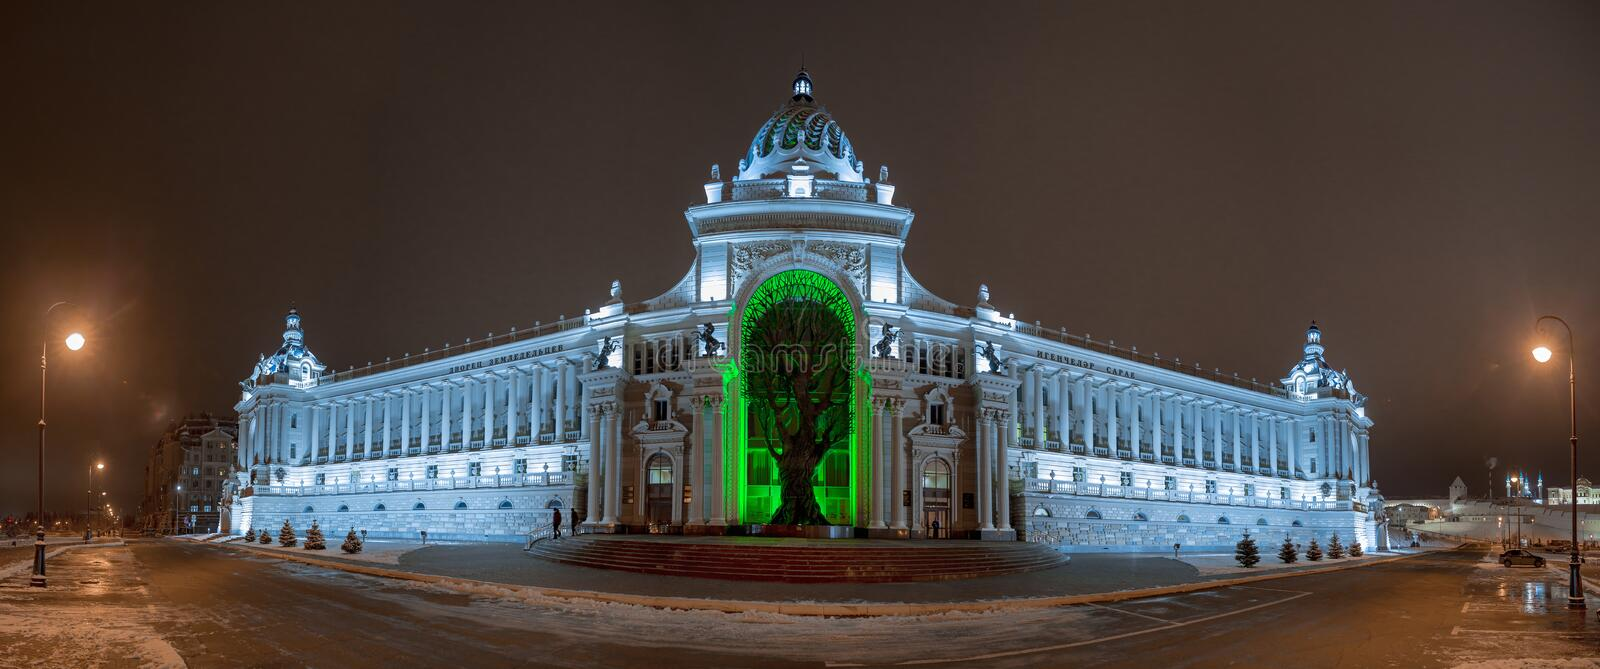 Palace of Farmers in Kazan, Republic Tatarstan. Winter view attractions royalty free stock images